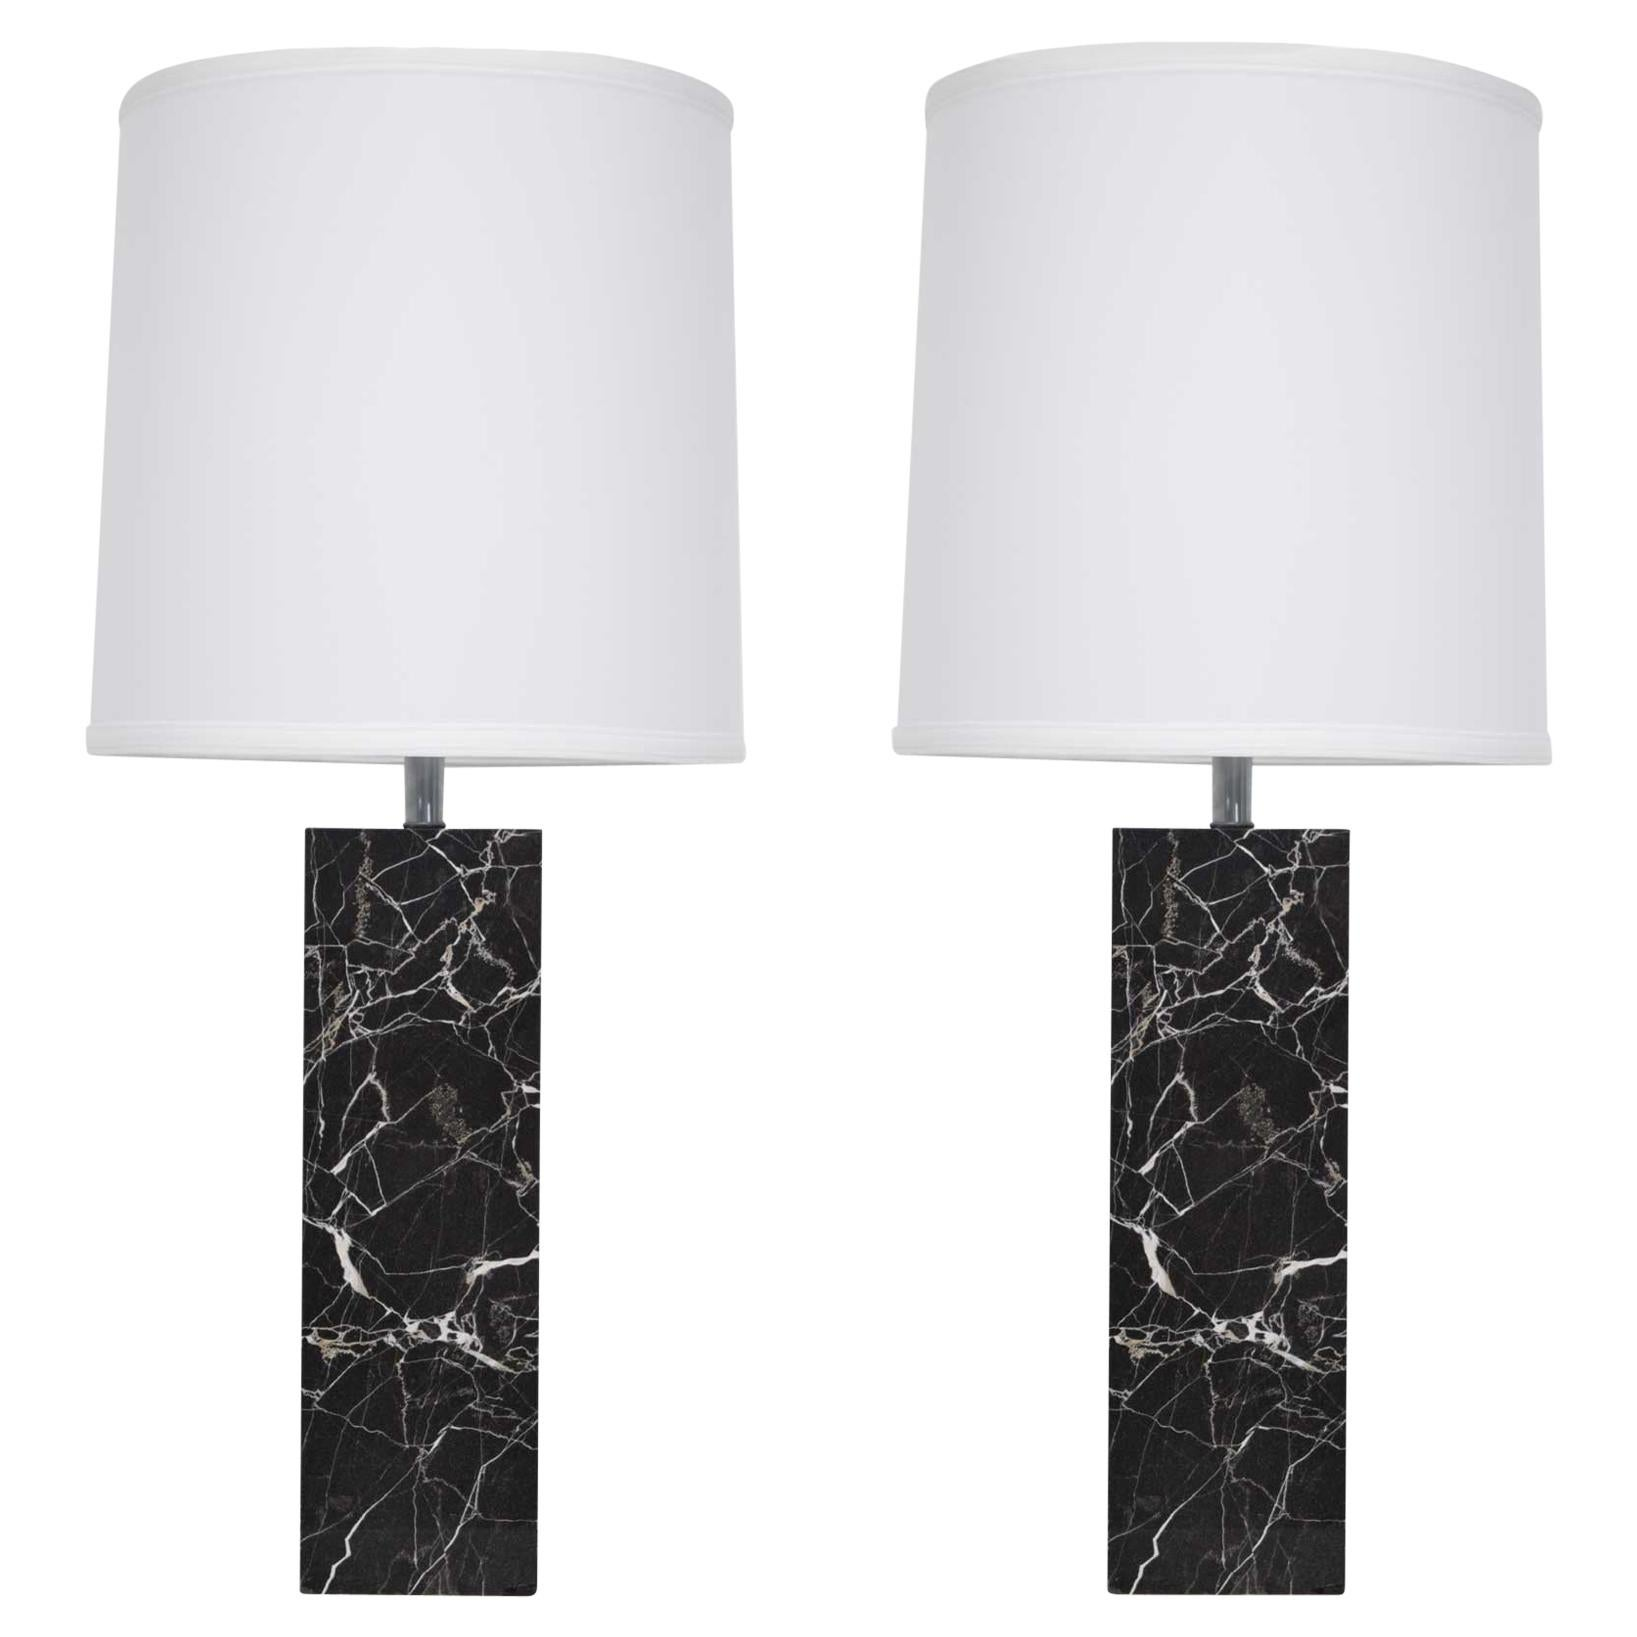 Nessen Studio Marble Table Lamps in Black Marble